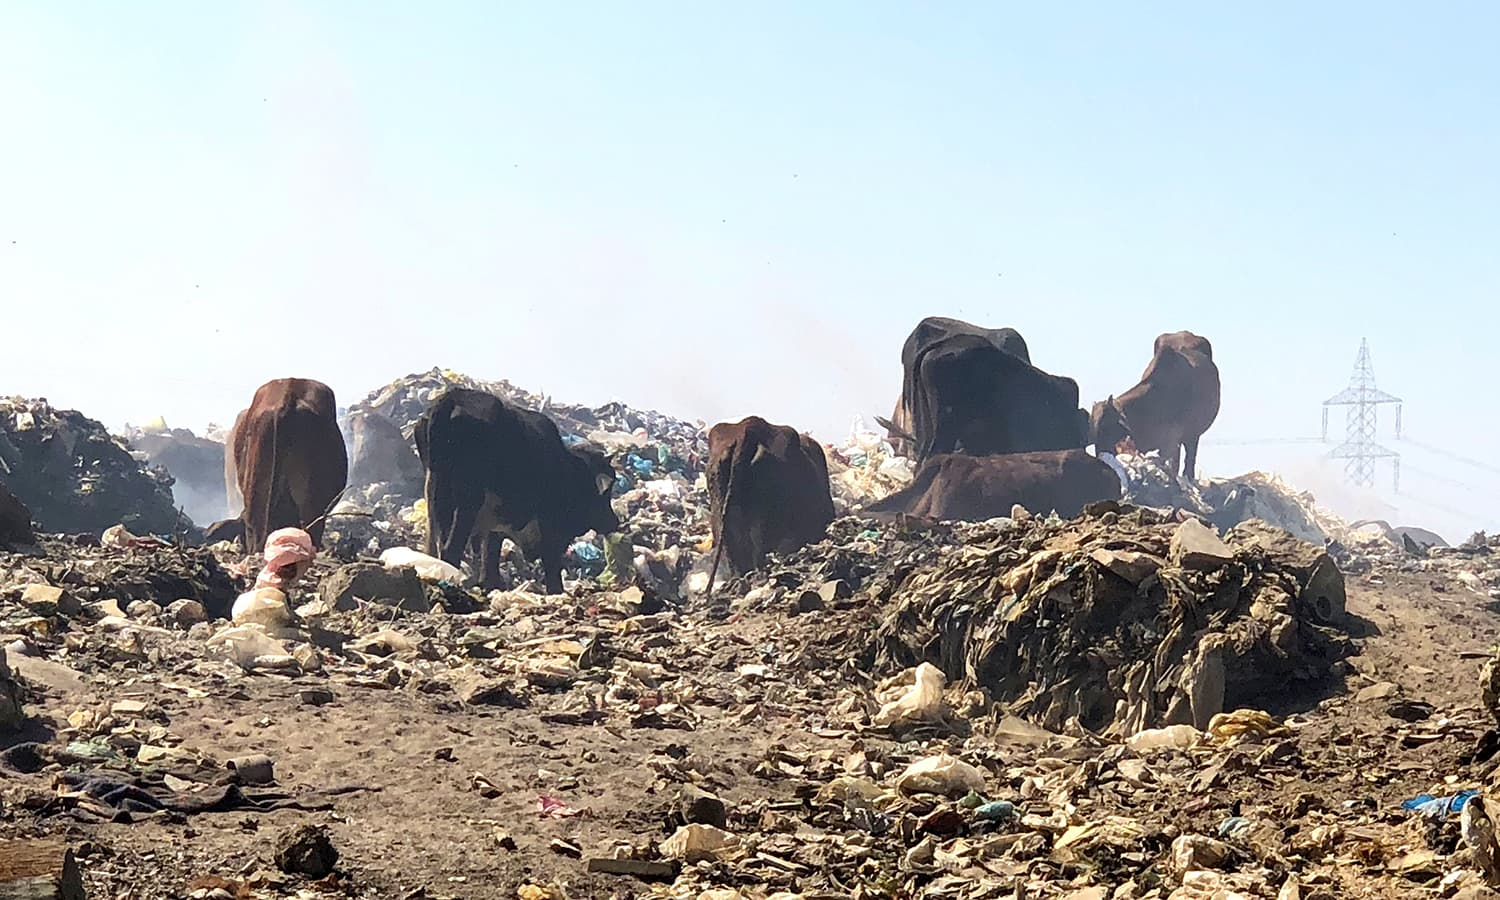 Cows and buffaloes rummage through garbage looking for food at Jam Chakro. — Photo by author